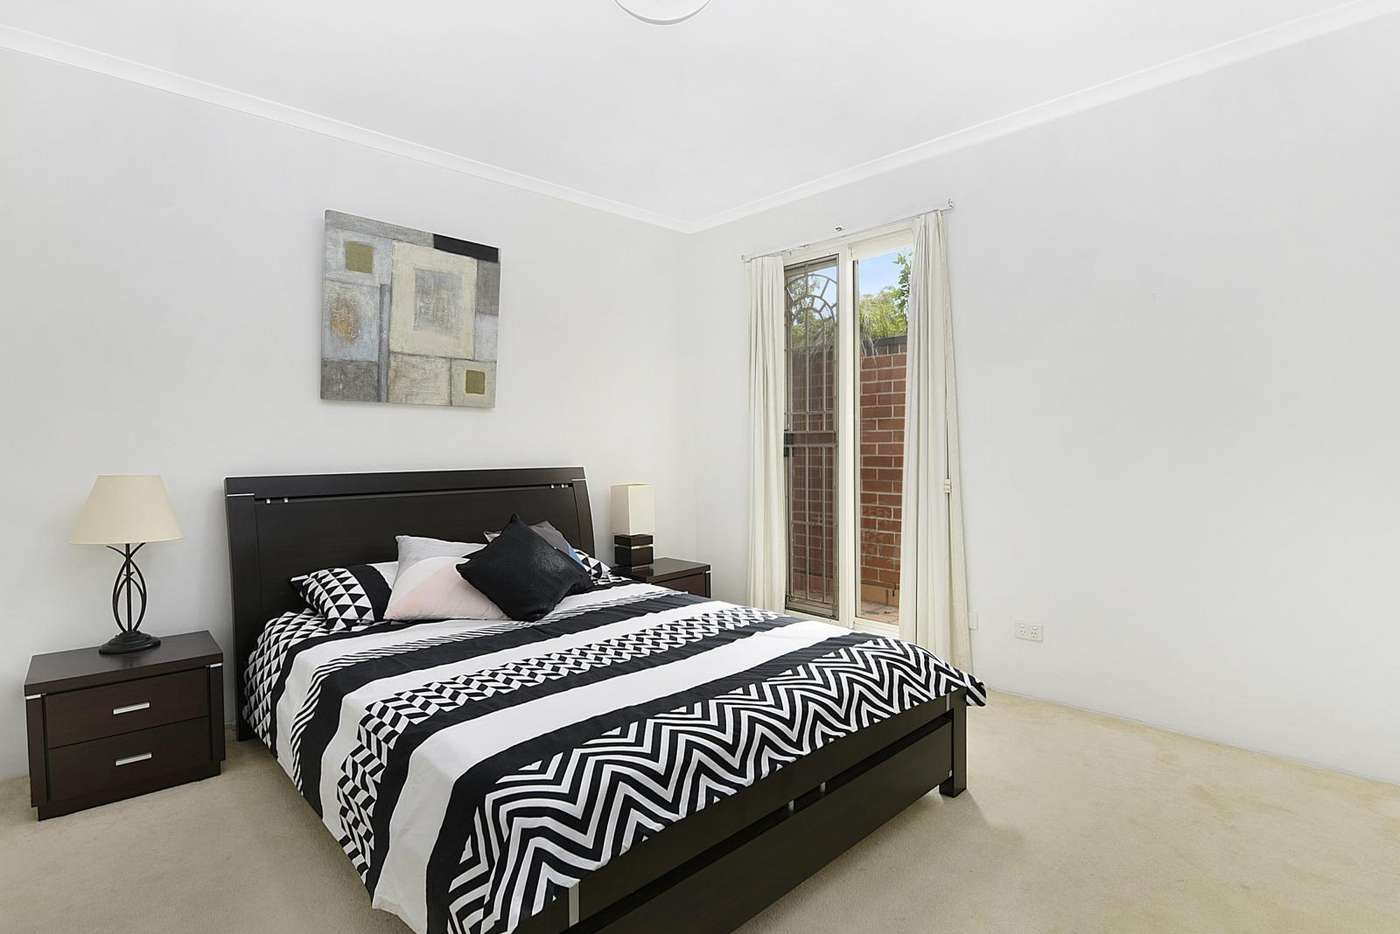 Main view of Homely apartment listing, 7/20 Dalleys Road, Naremburn NSW 2065